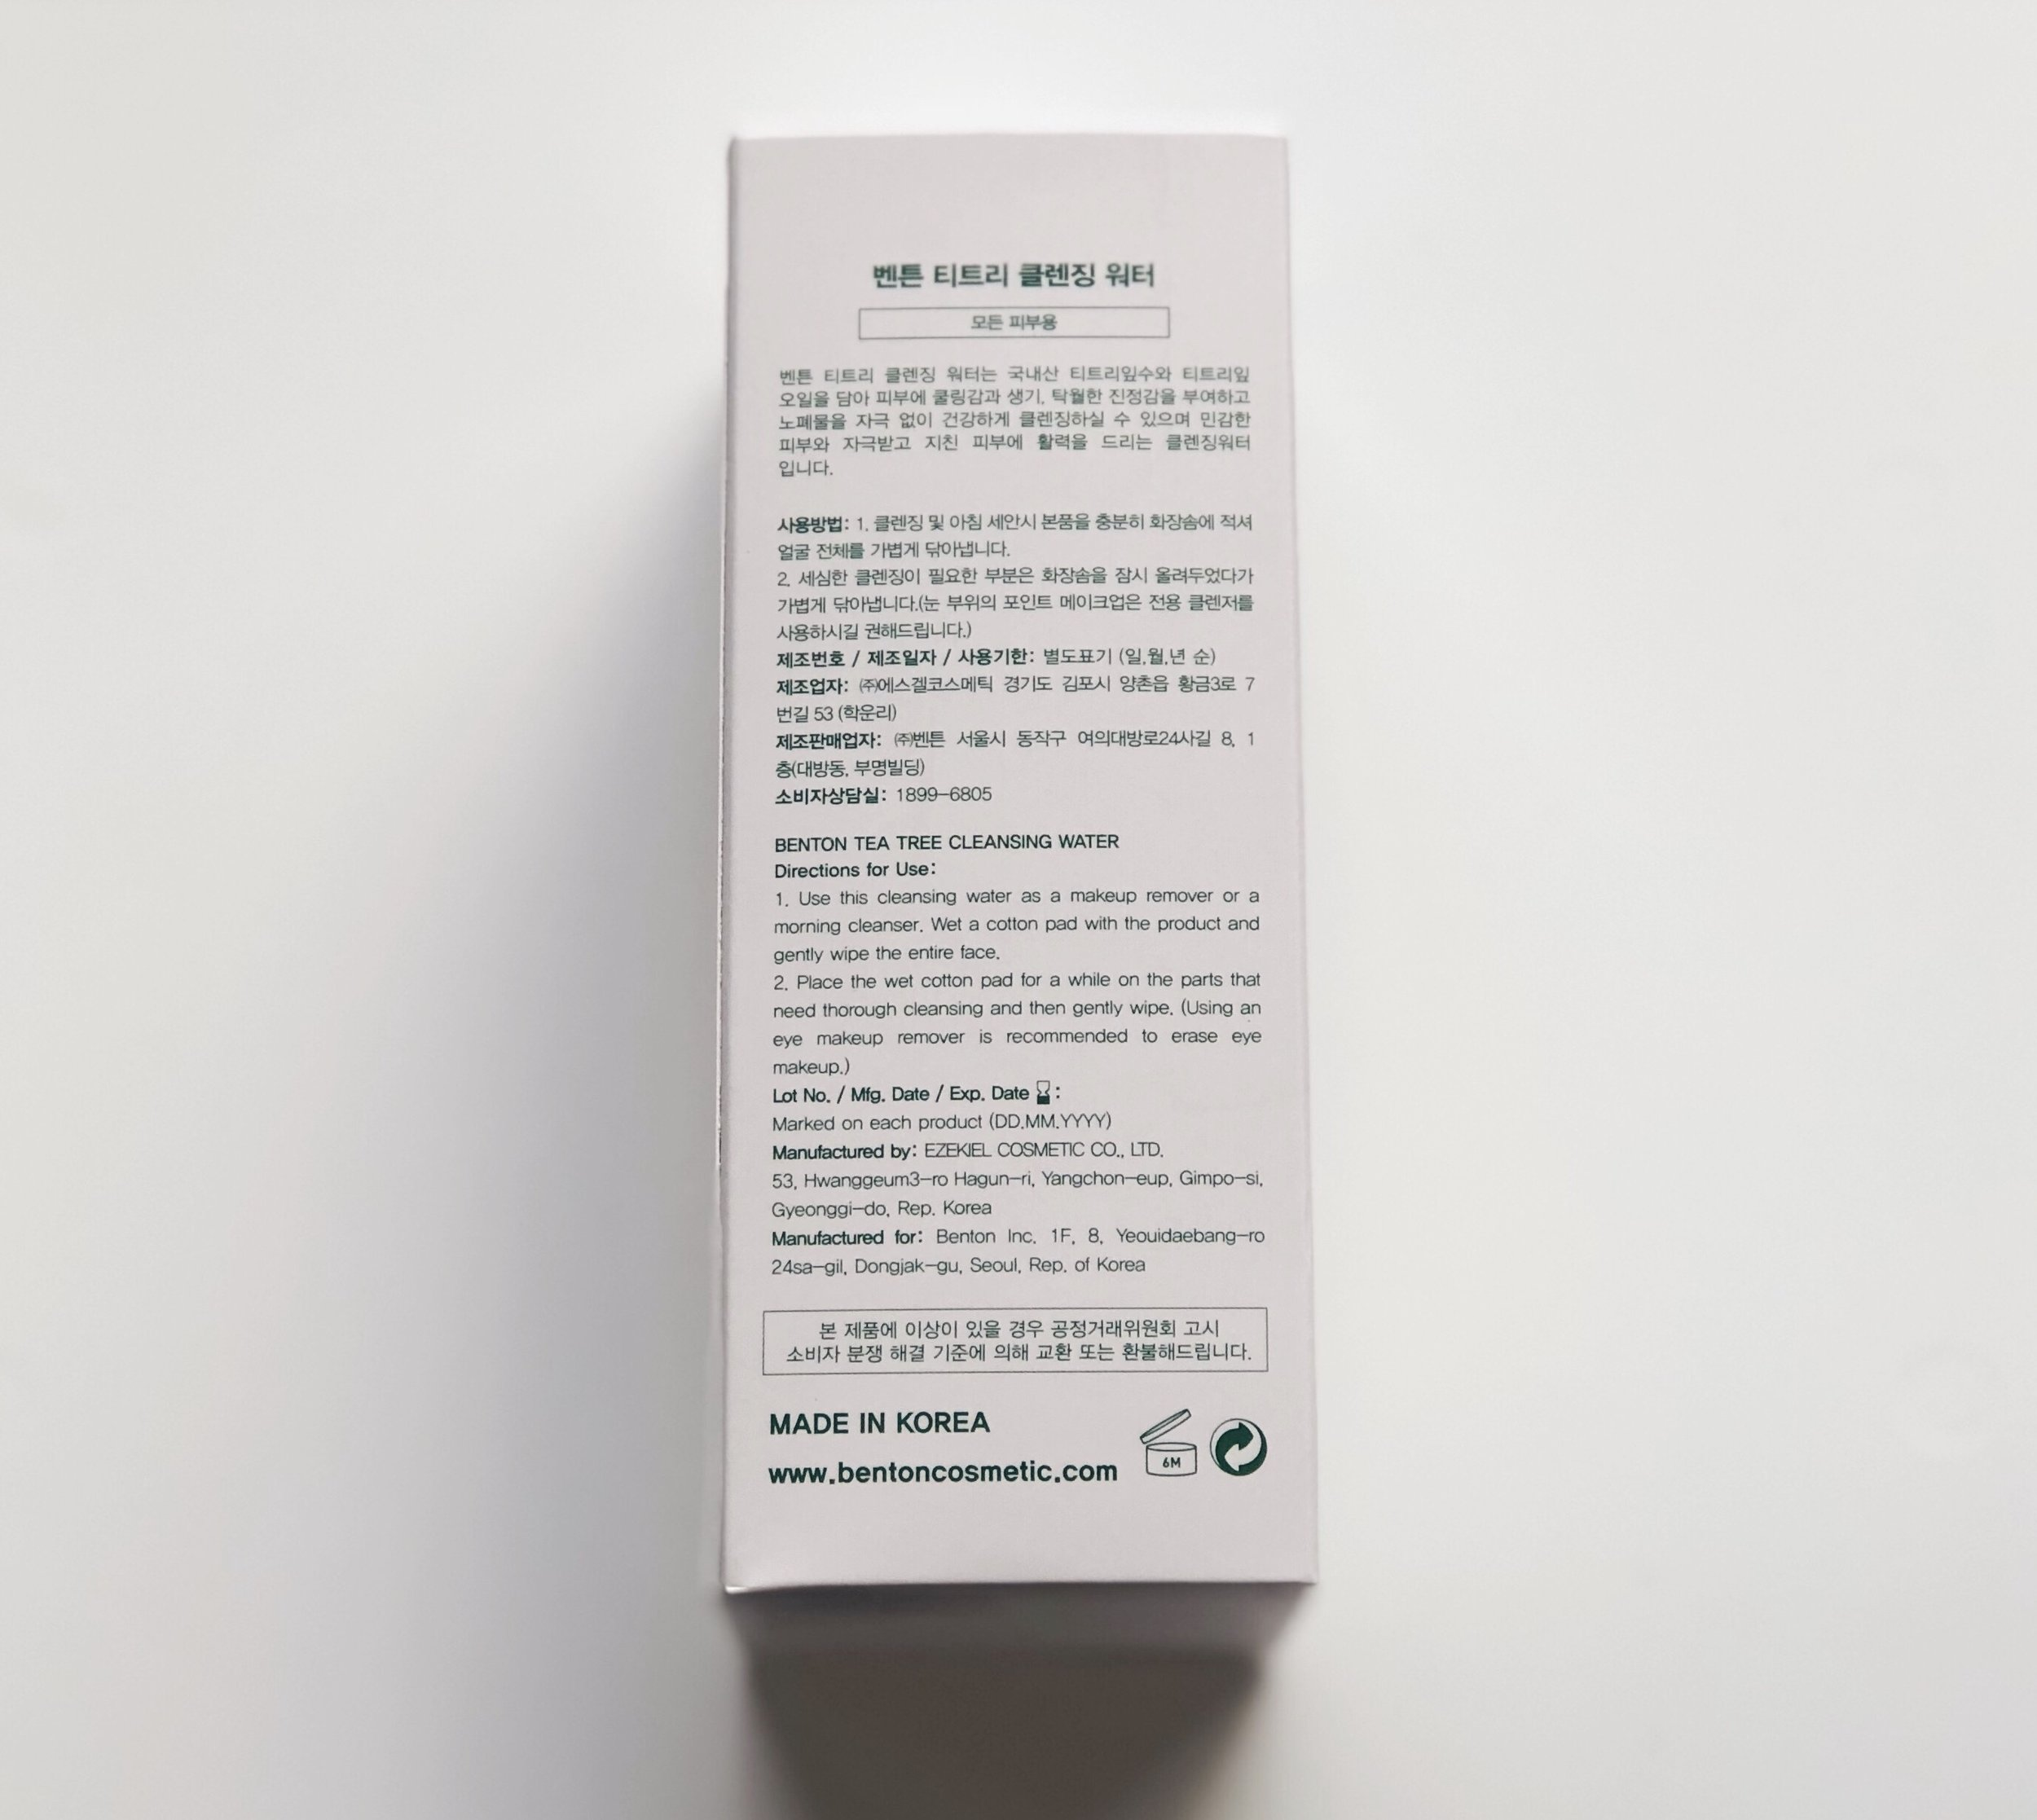 Directions for use on package.